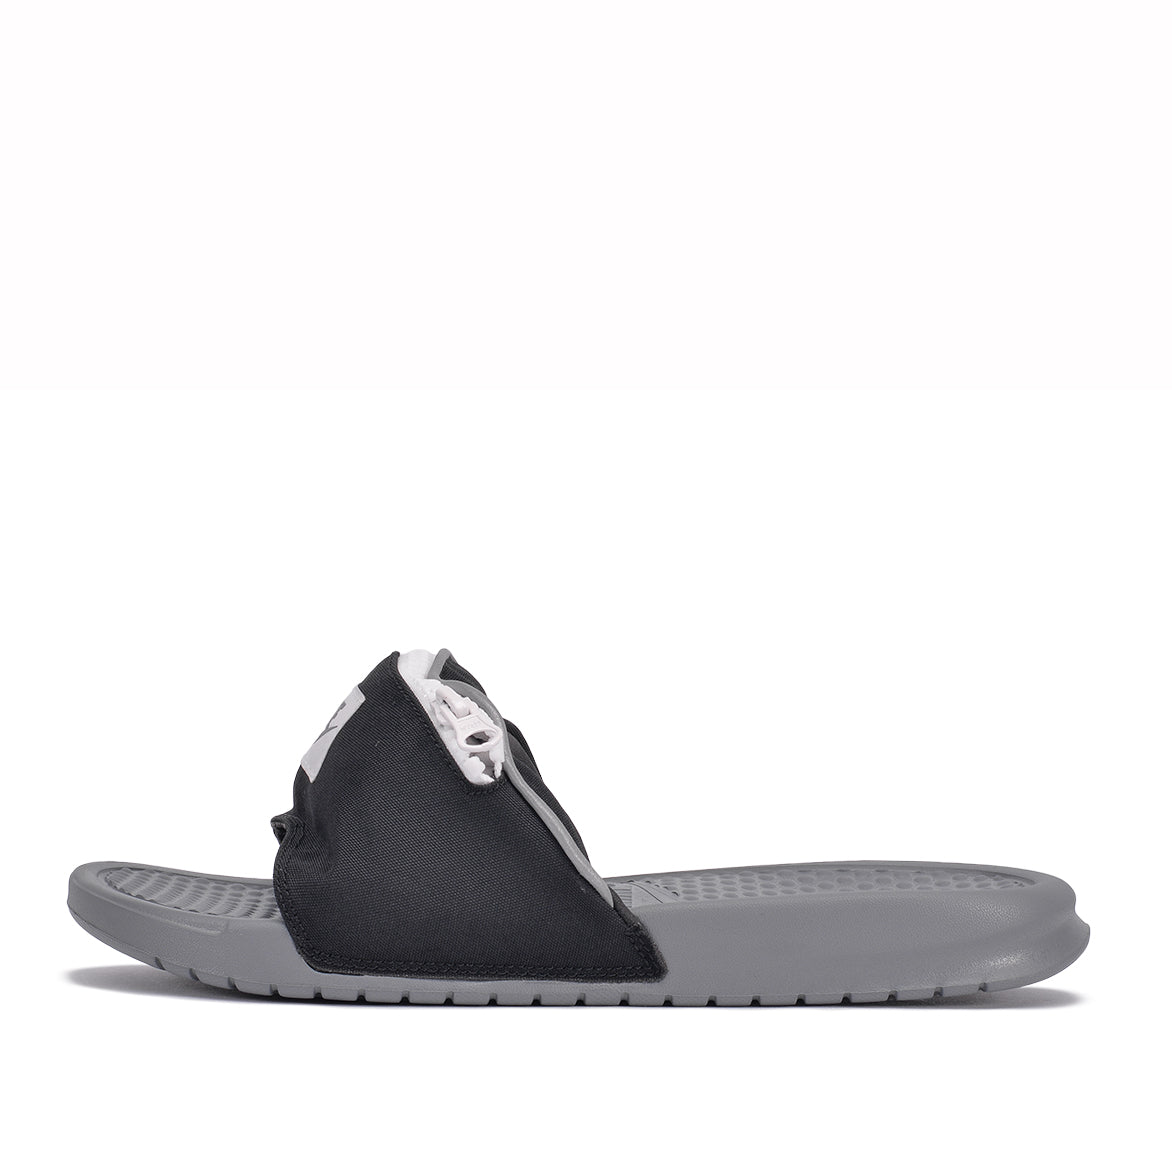 BENASSI JDI FANNY - BLACK / COOL GREY